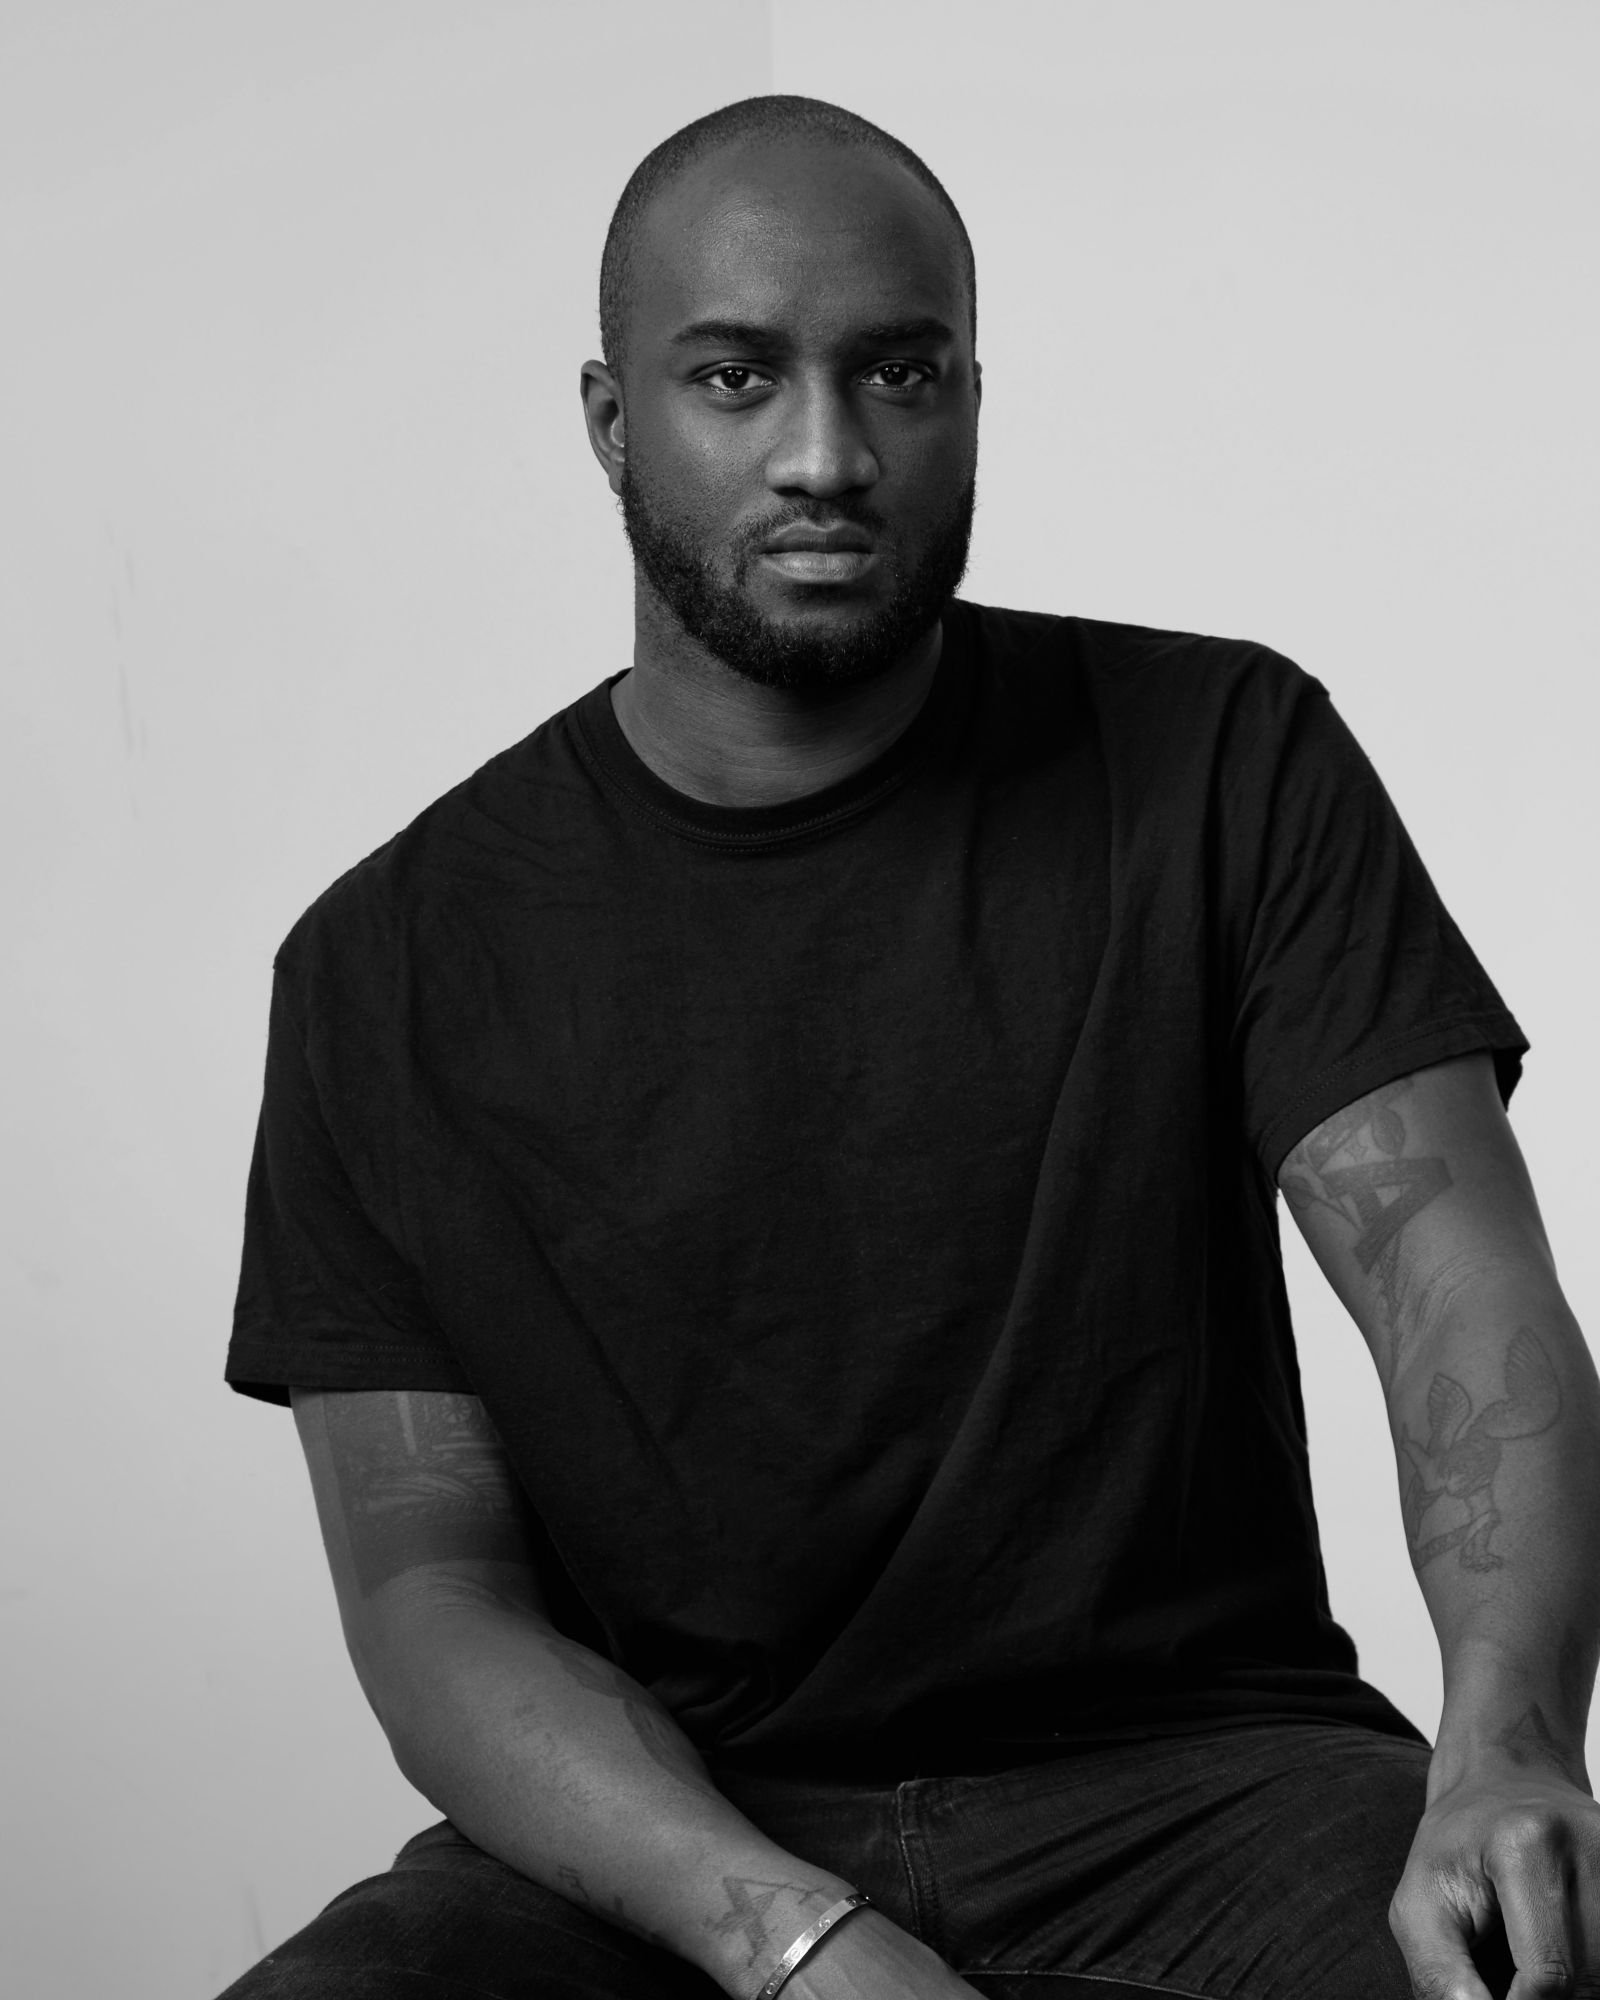 5 Minutes With... Virgil Abloh, Founder Of Off-White